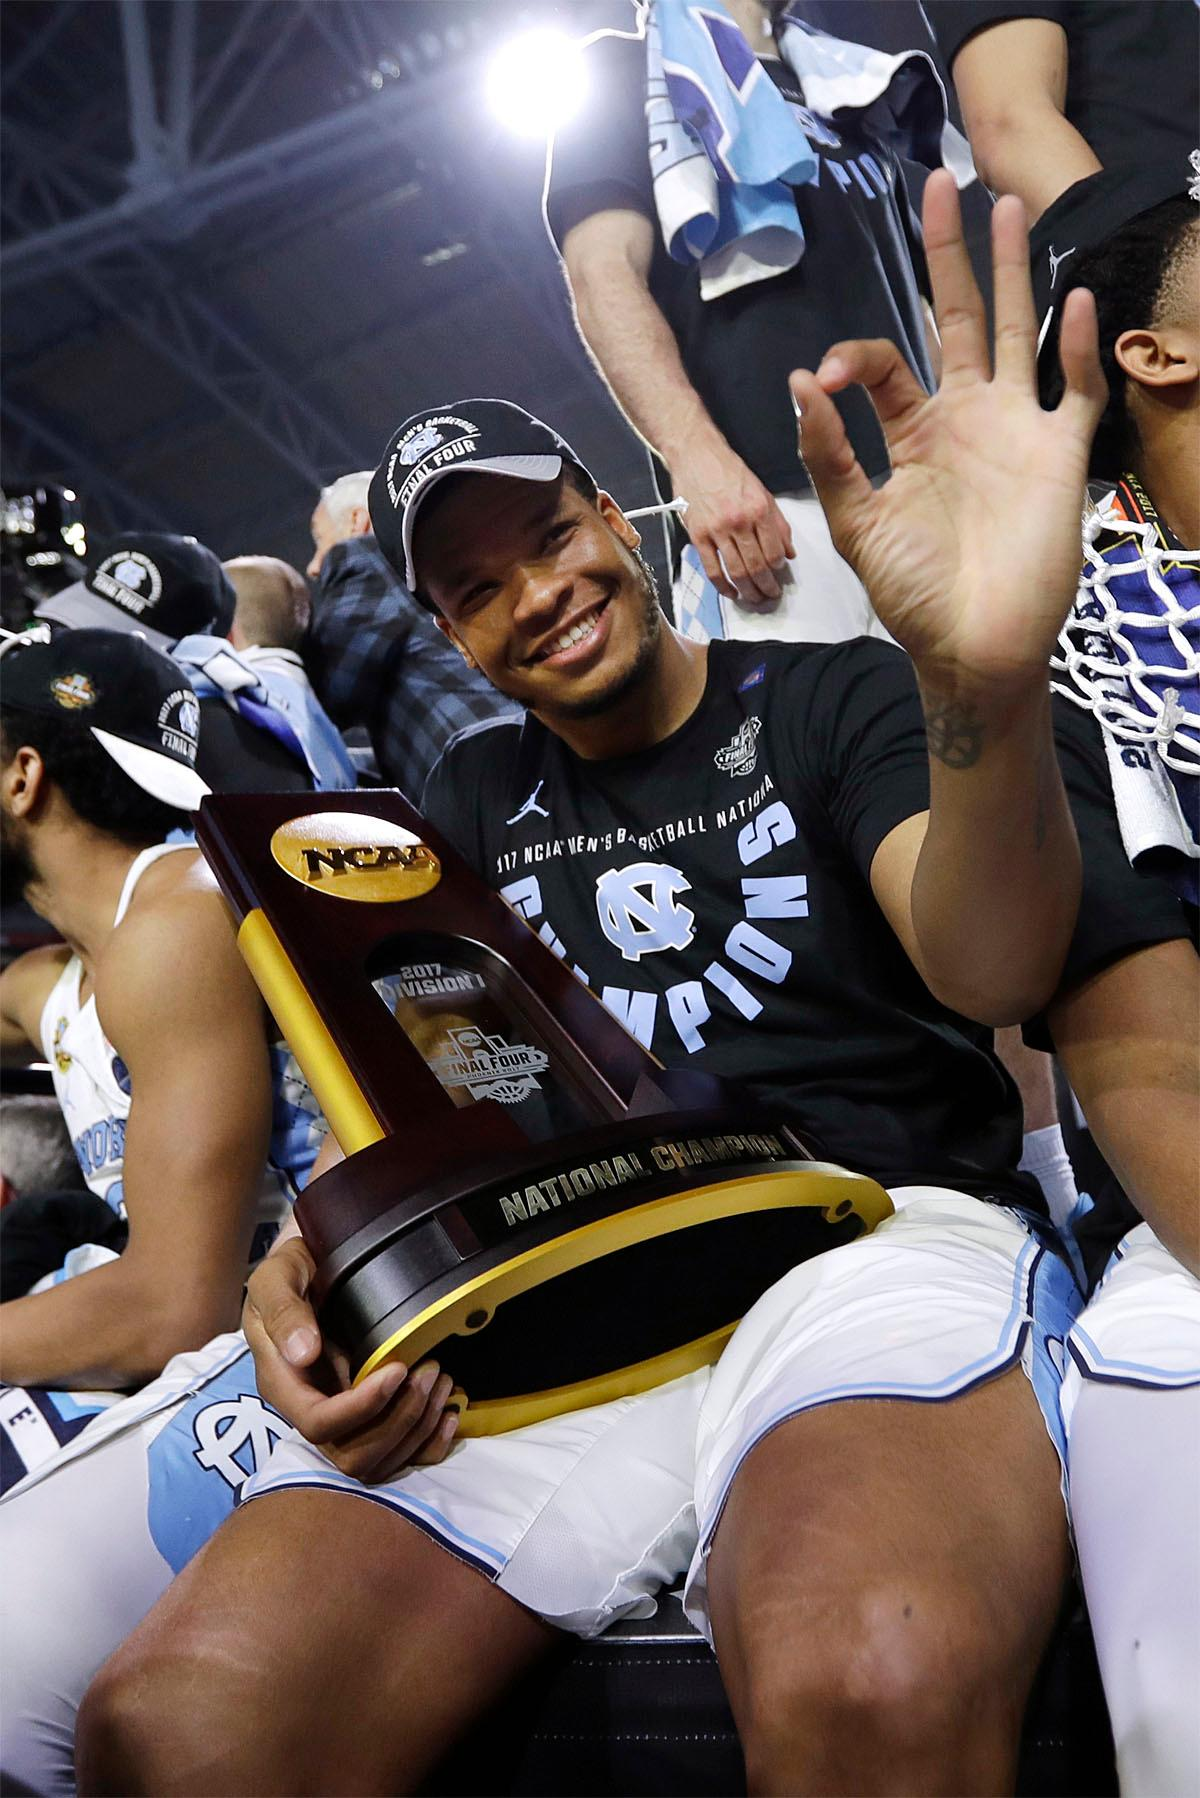 North Carolina forward Kennedy Meeks celebrates with the trophy after the championship game against Gonzaga at the Final Four NCAA college basketball tournament, Monday, April 3, 2017, in Glendale, Ariz. North Carolina 71-65. (AP Photo/David J. Phillip)